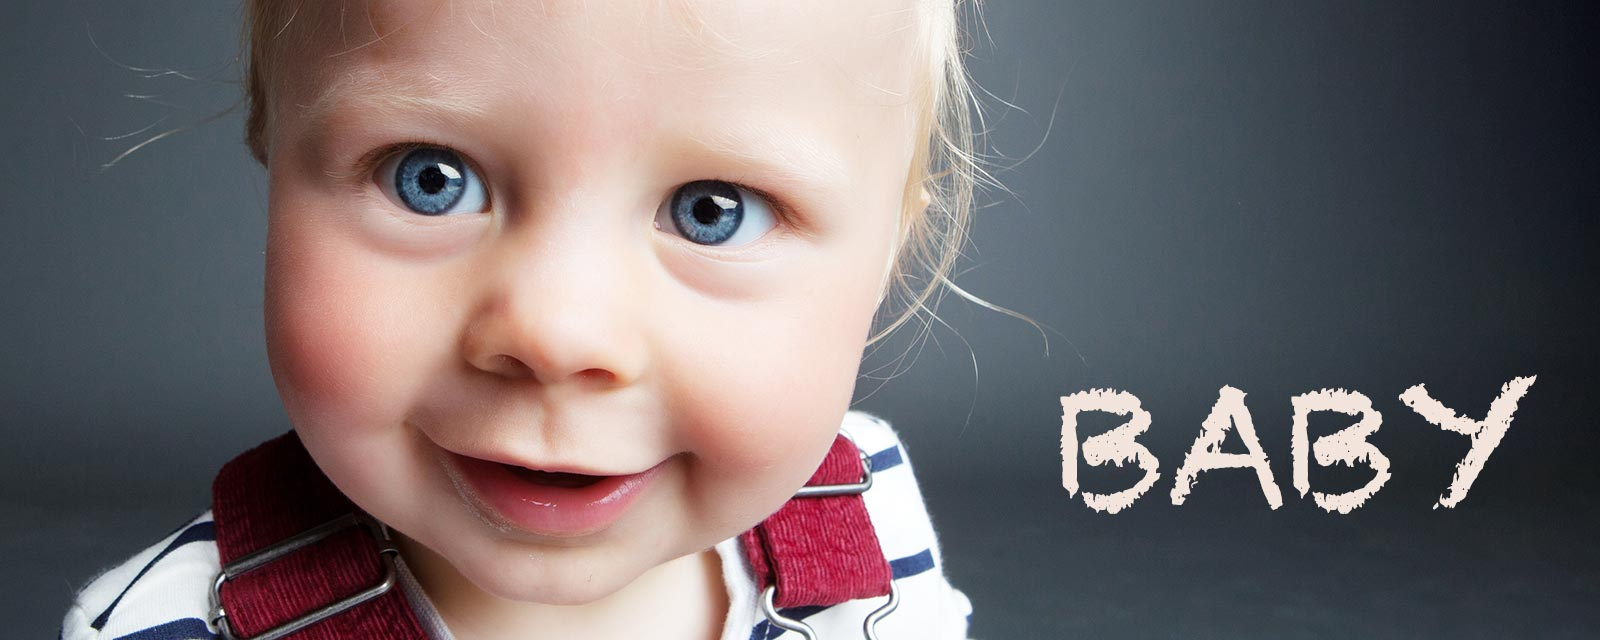 Beautiful portraits of your newborn and baby